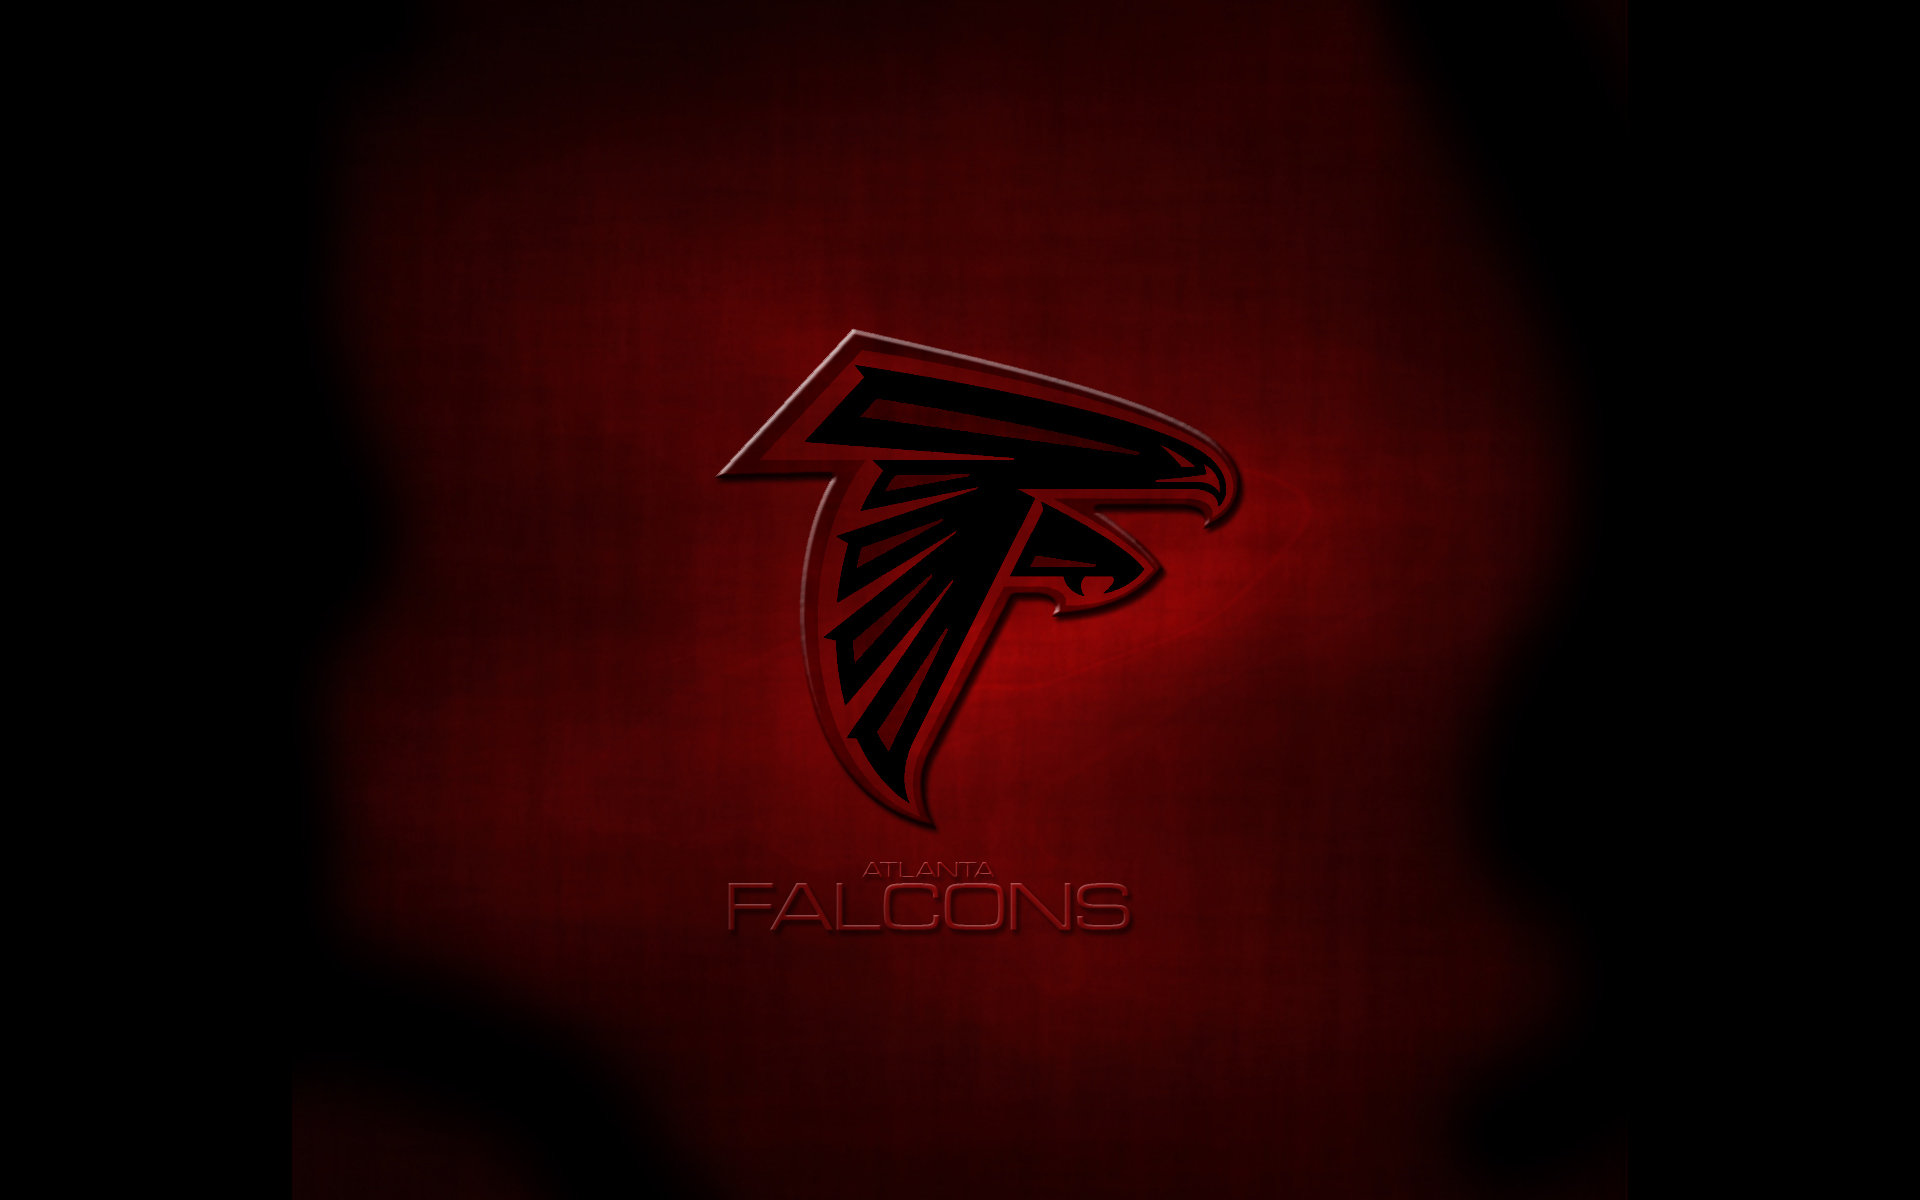 Atlanta Falcons 2018 Wallpaper Hd 64 Images: 8 HD Atlanta Falcons Wallpapers